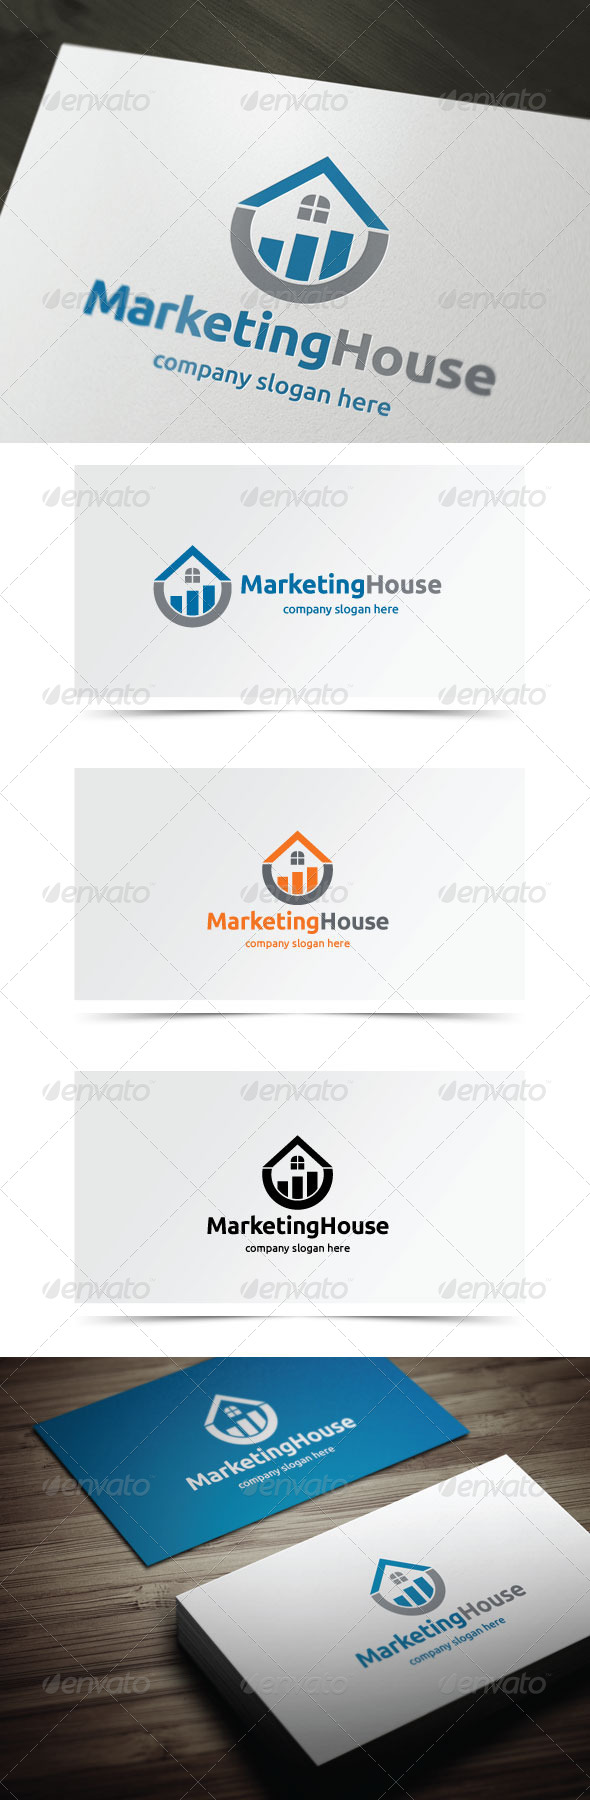 GraphicRiver Marketing House 6124268